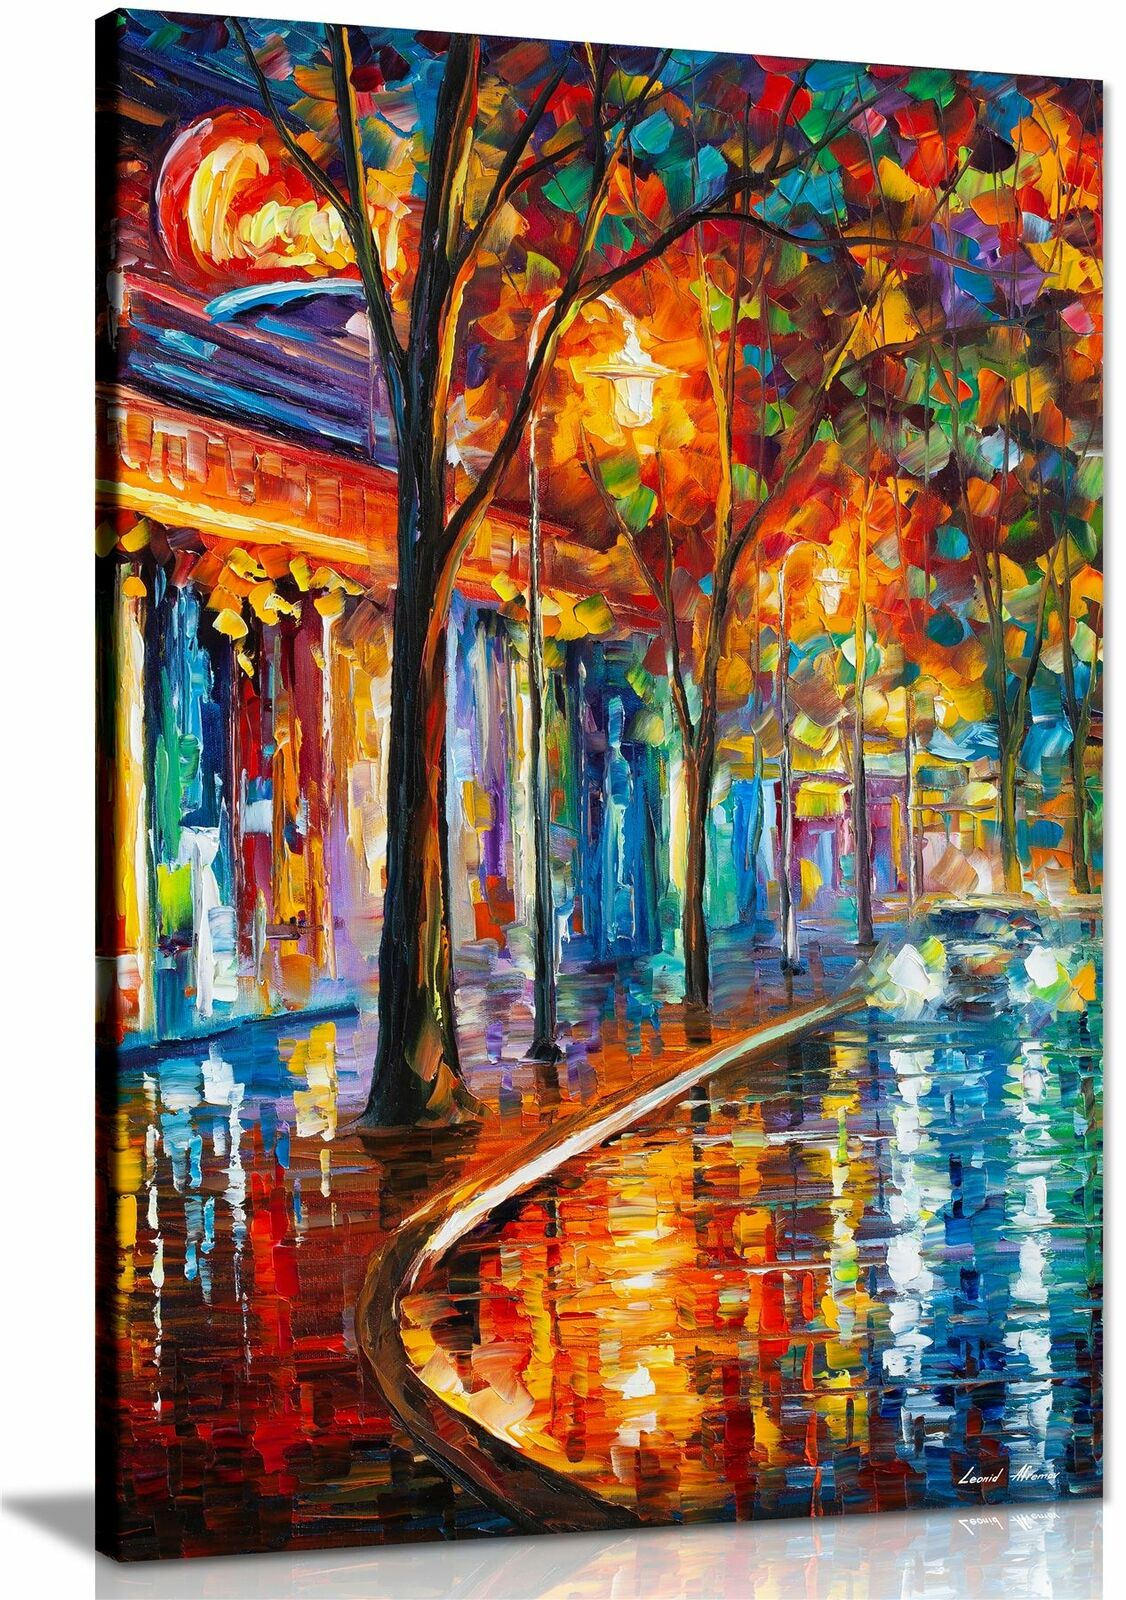 AT54378D Freshness Of Cold By Leonid Afremov Canvas Wall Pictures Abstract Art